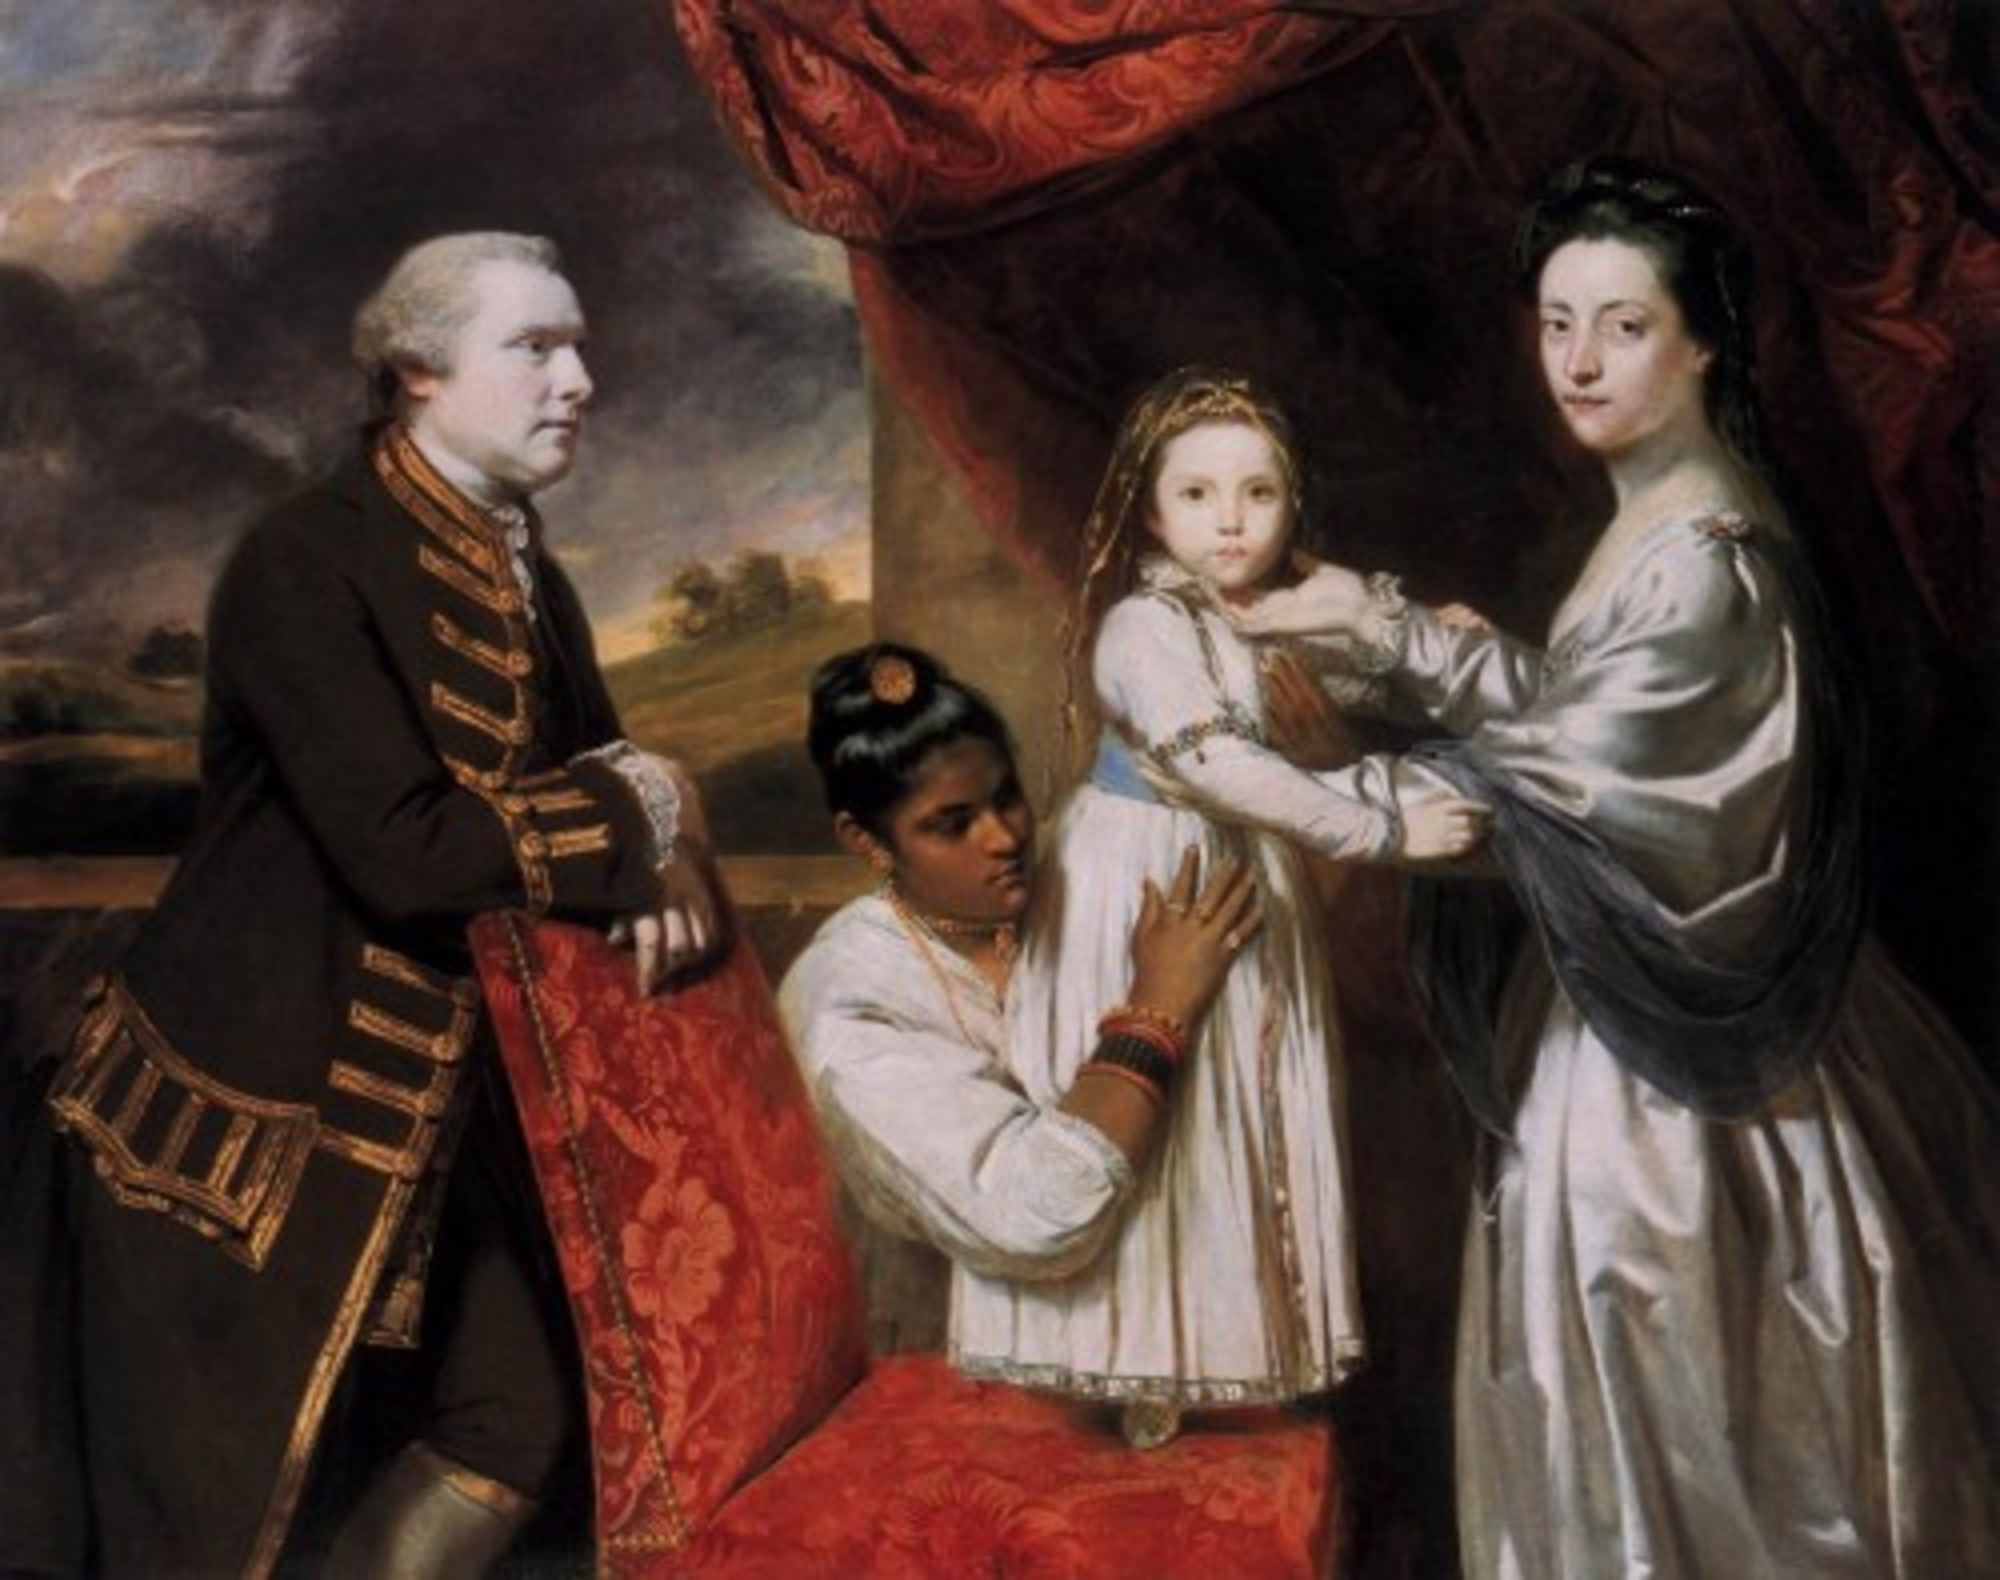 Joshua_Reynolds_-_George_Clive_and_his_Family_with_an_Indian_Maid_-_WGA19338.jpg